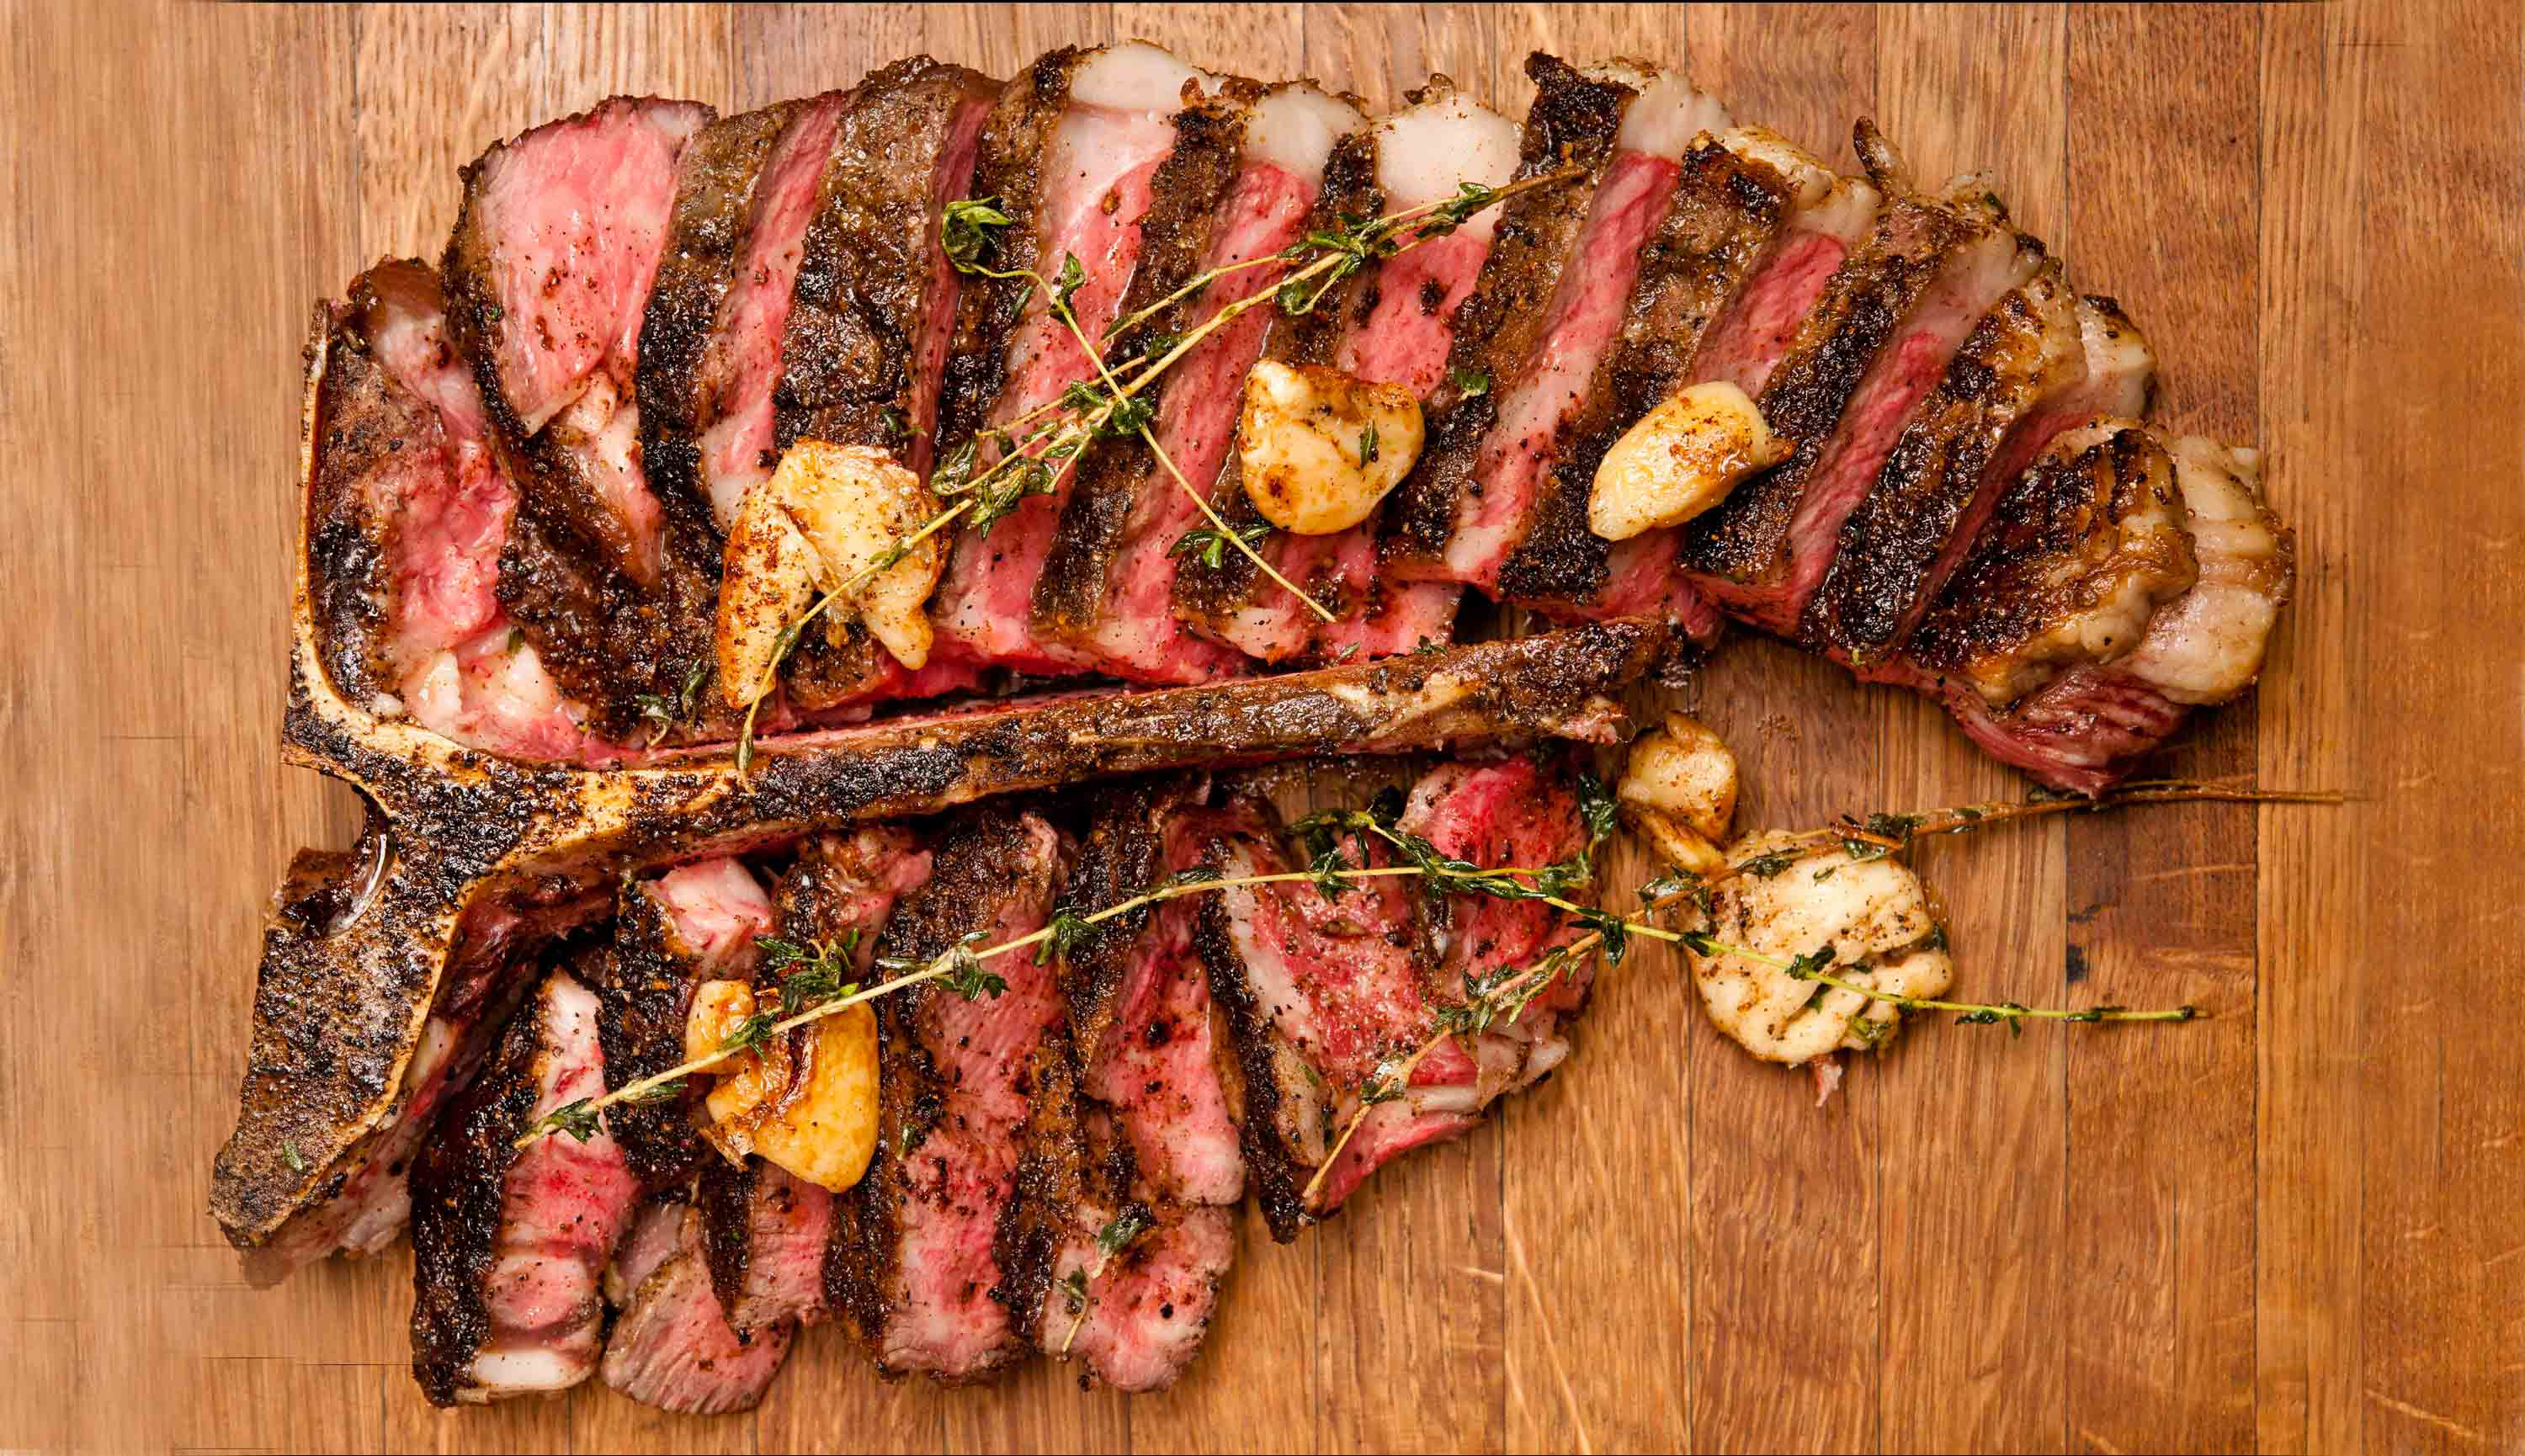 The Top 5 Best Steakhouses in the US2